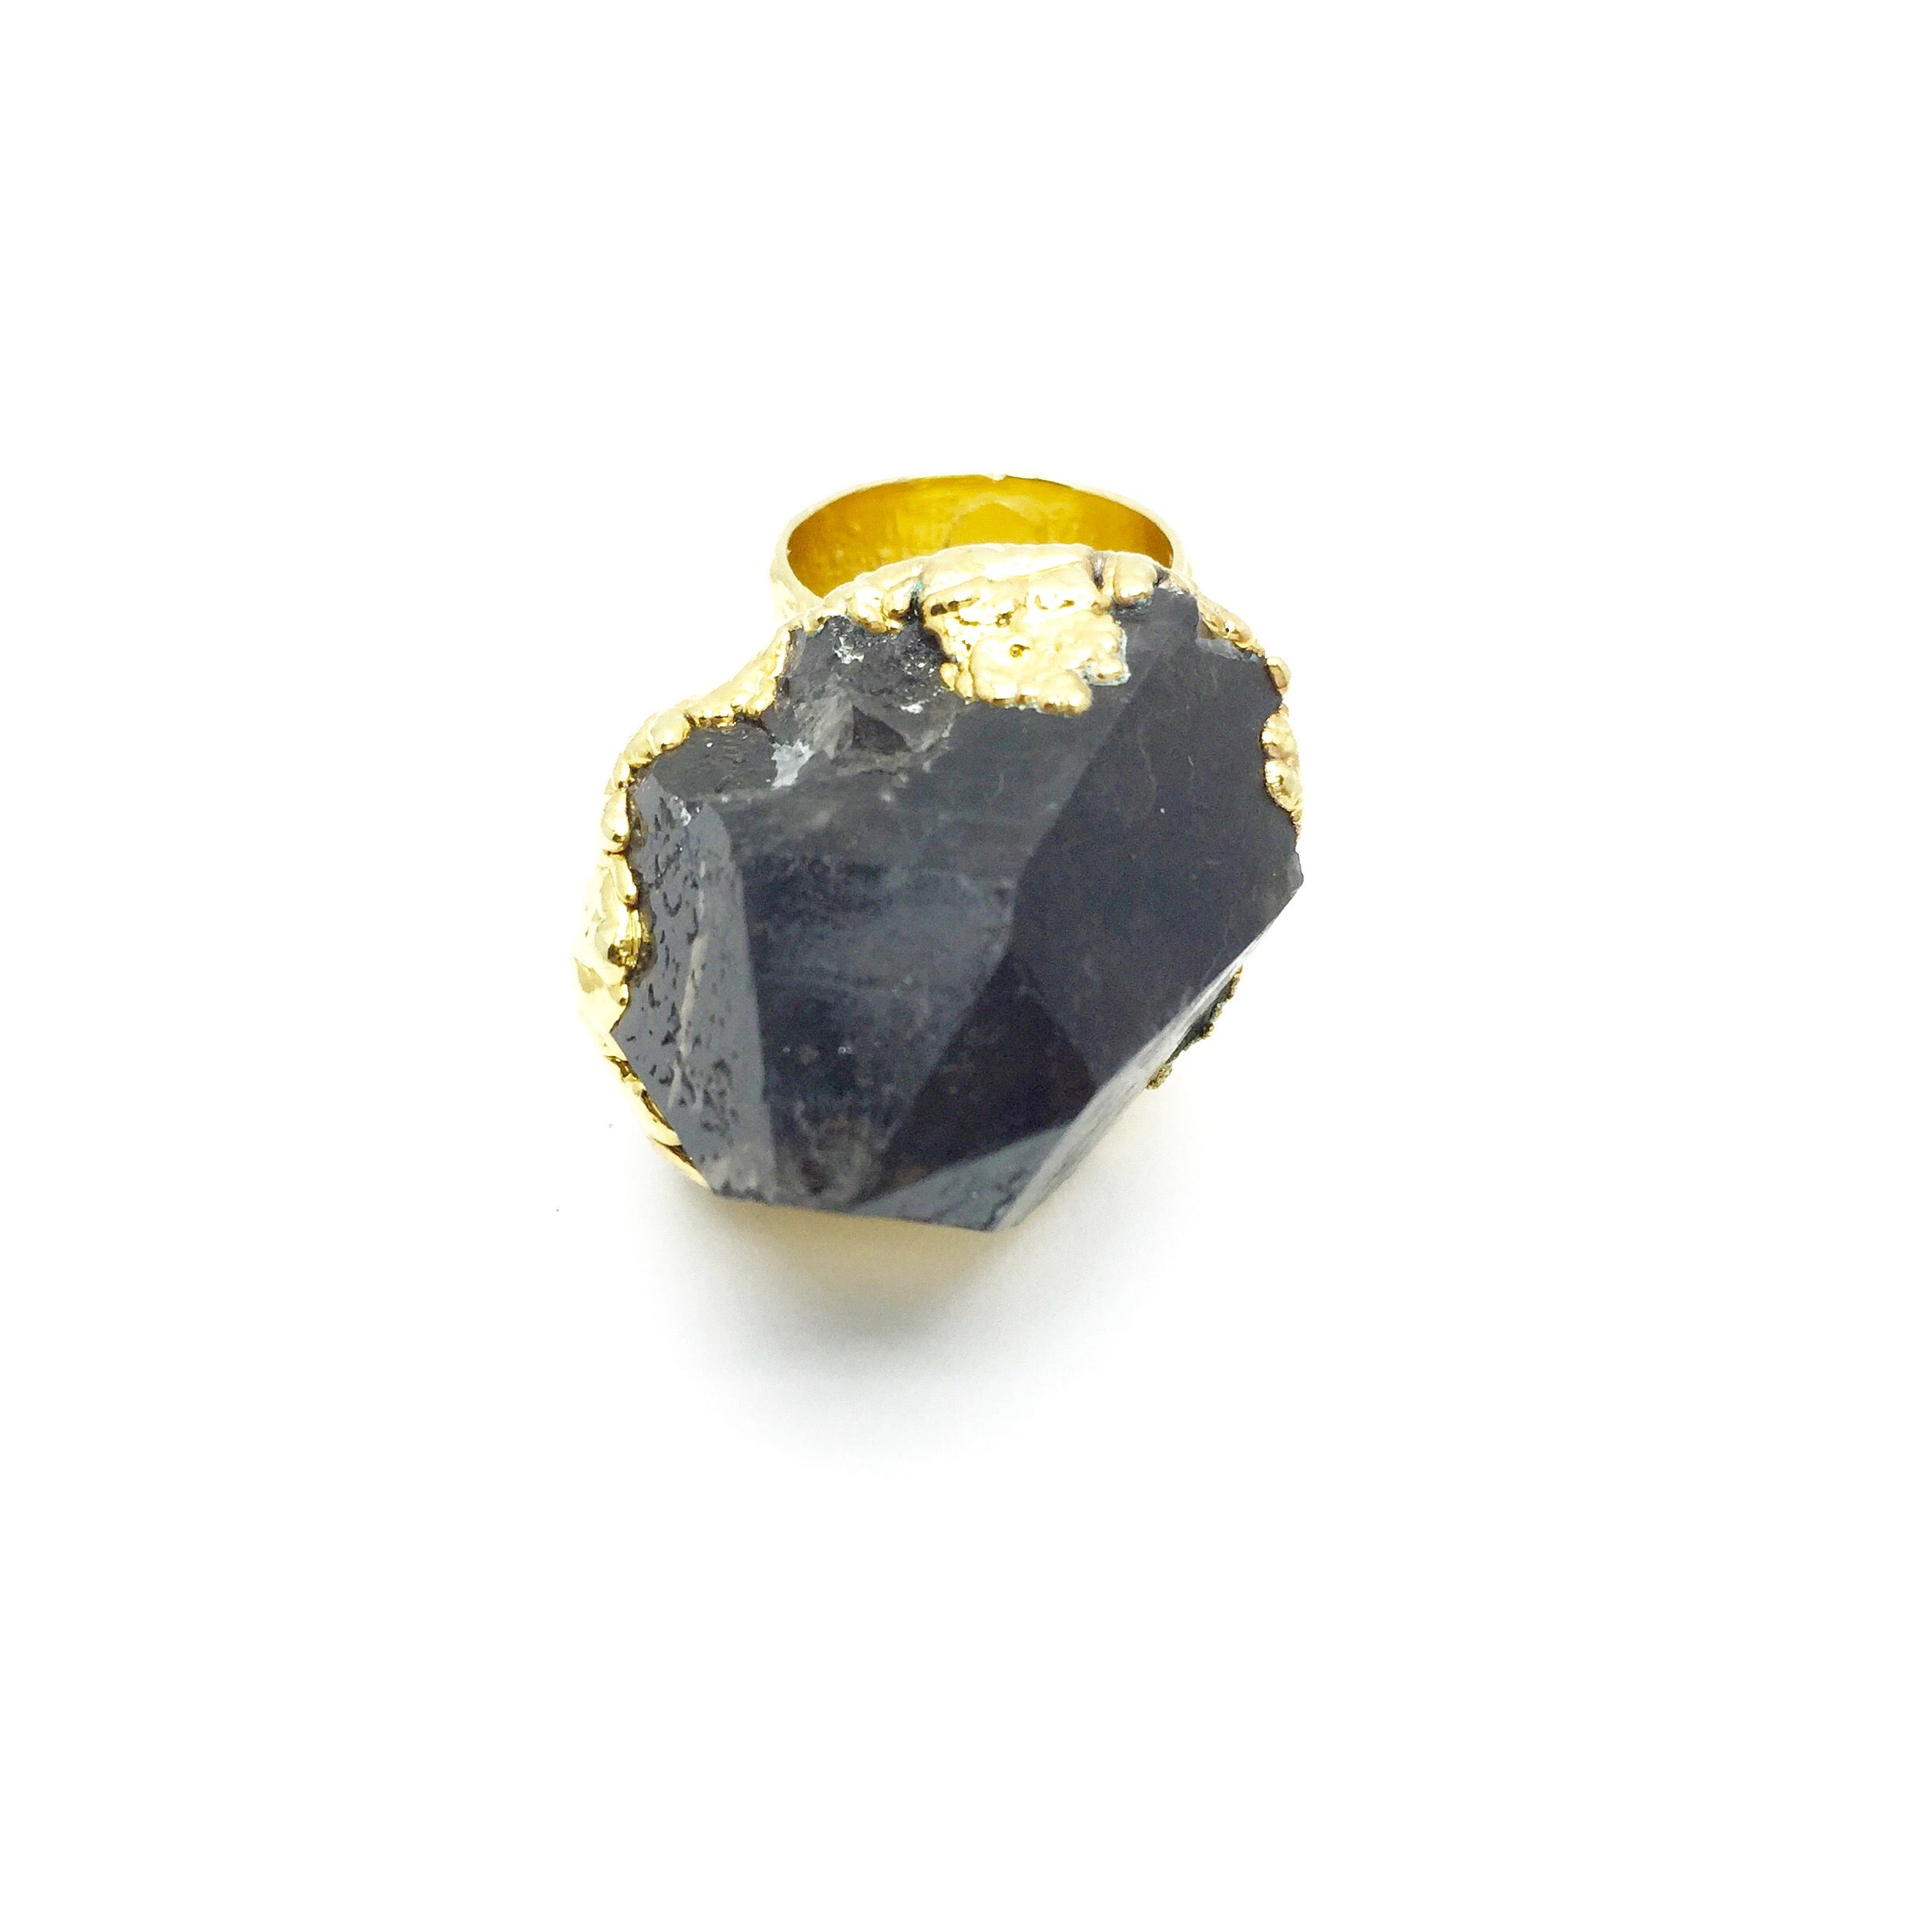 CRYSTAL PEAK Raw Smoky Quartz Crystal Ring